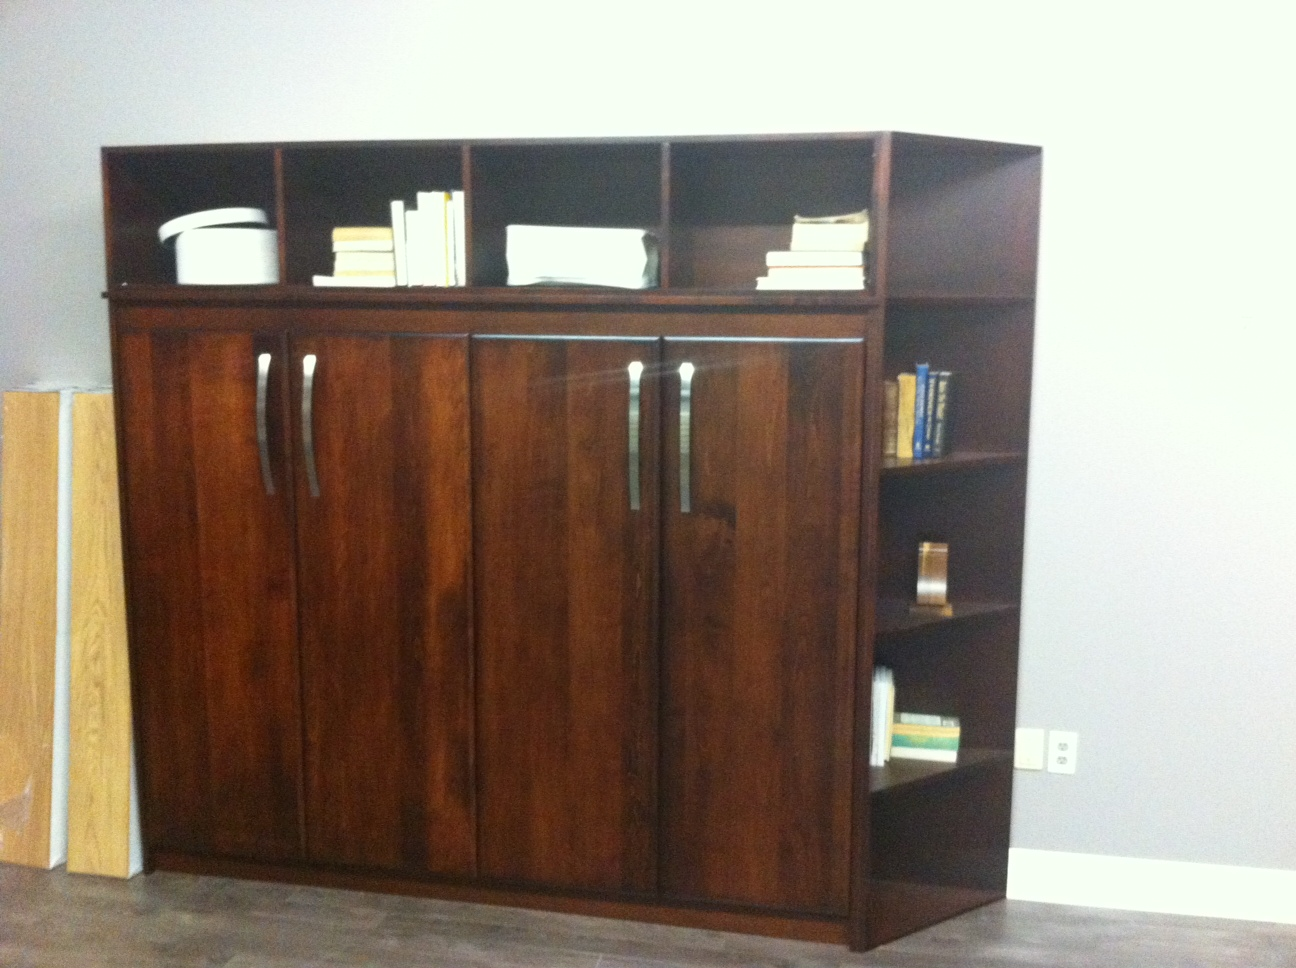 library shelving vertical furniture prev desk expand with horizontal opened murphy wall italian product bed